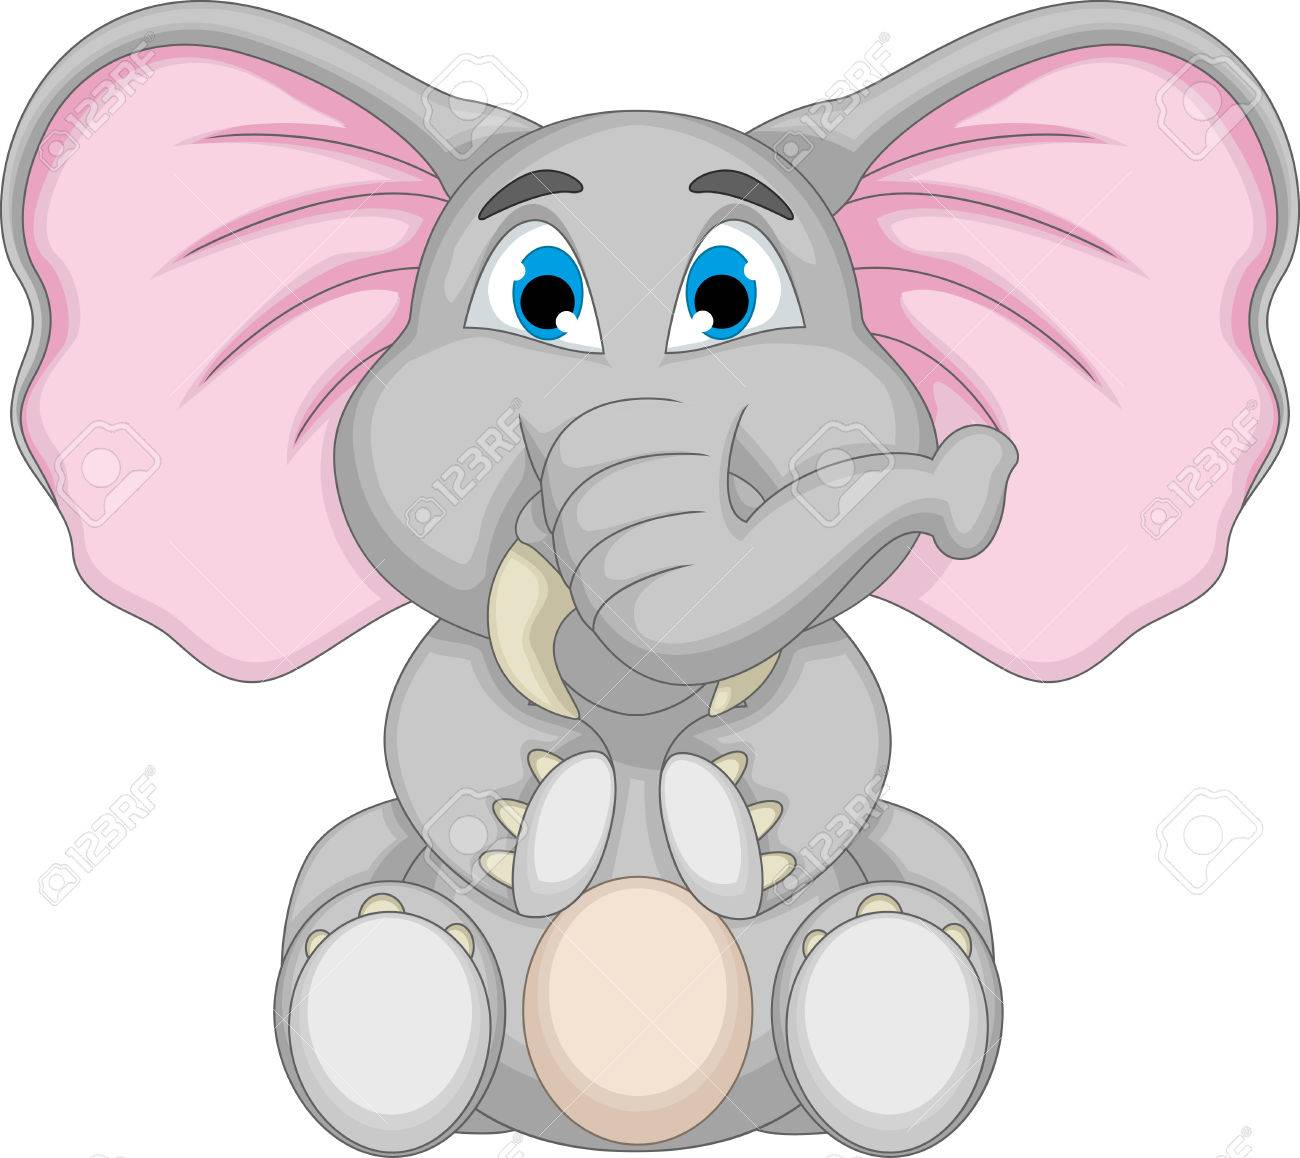 Cute Elephant Cartoon Sitting Royalty Free Cliparts, Vectors, And ...